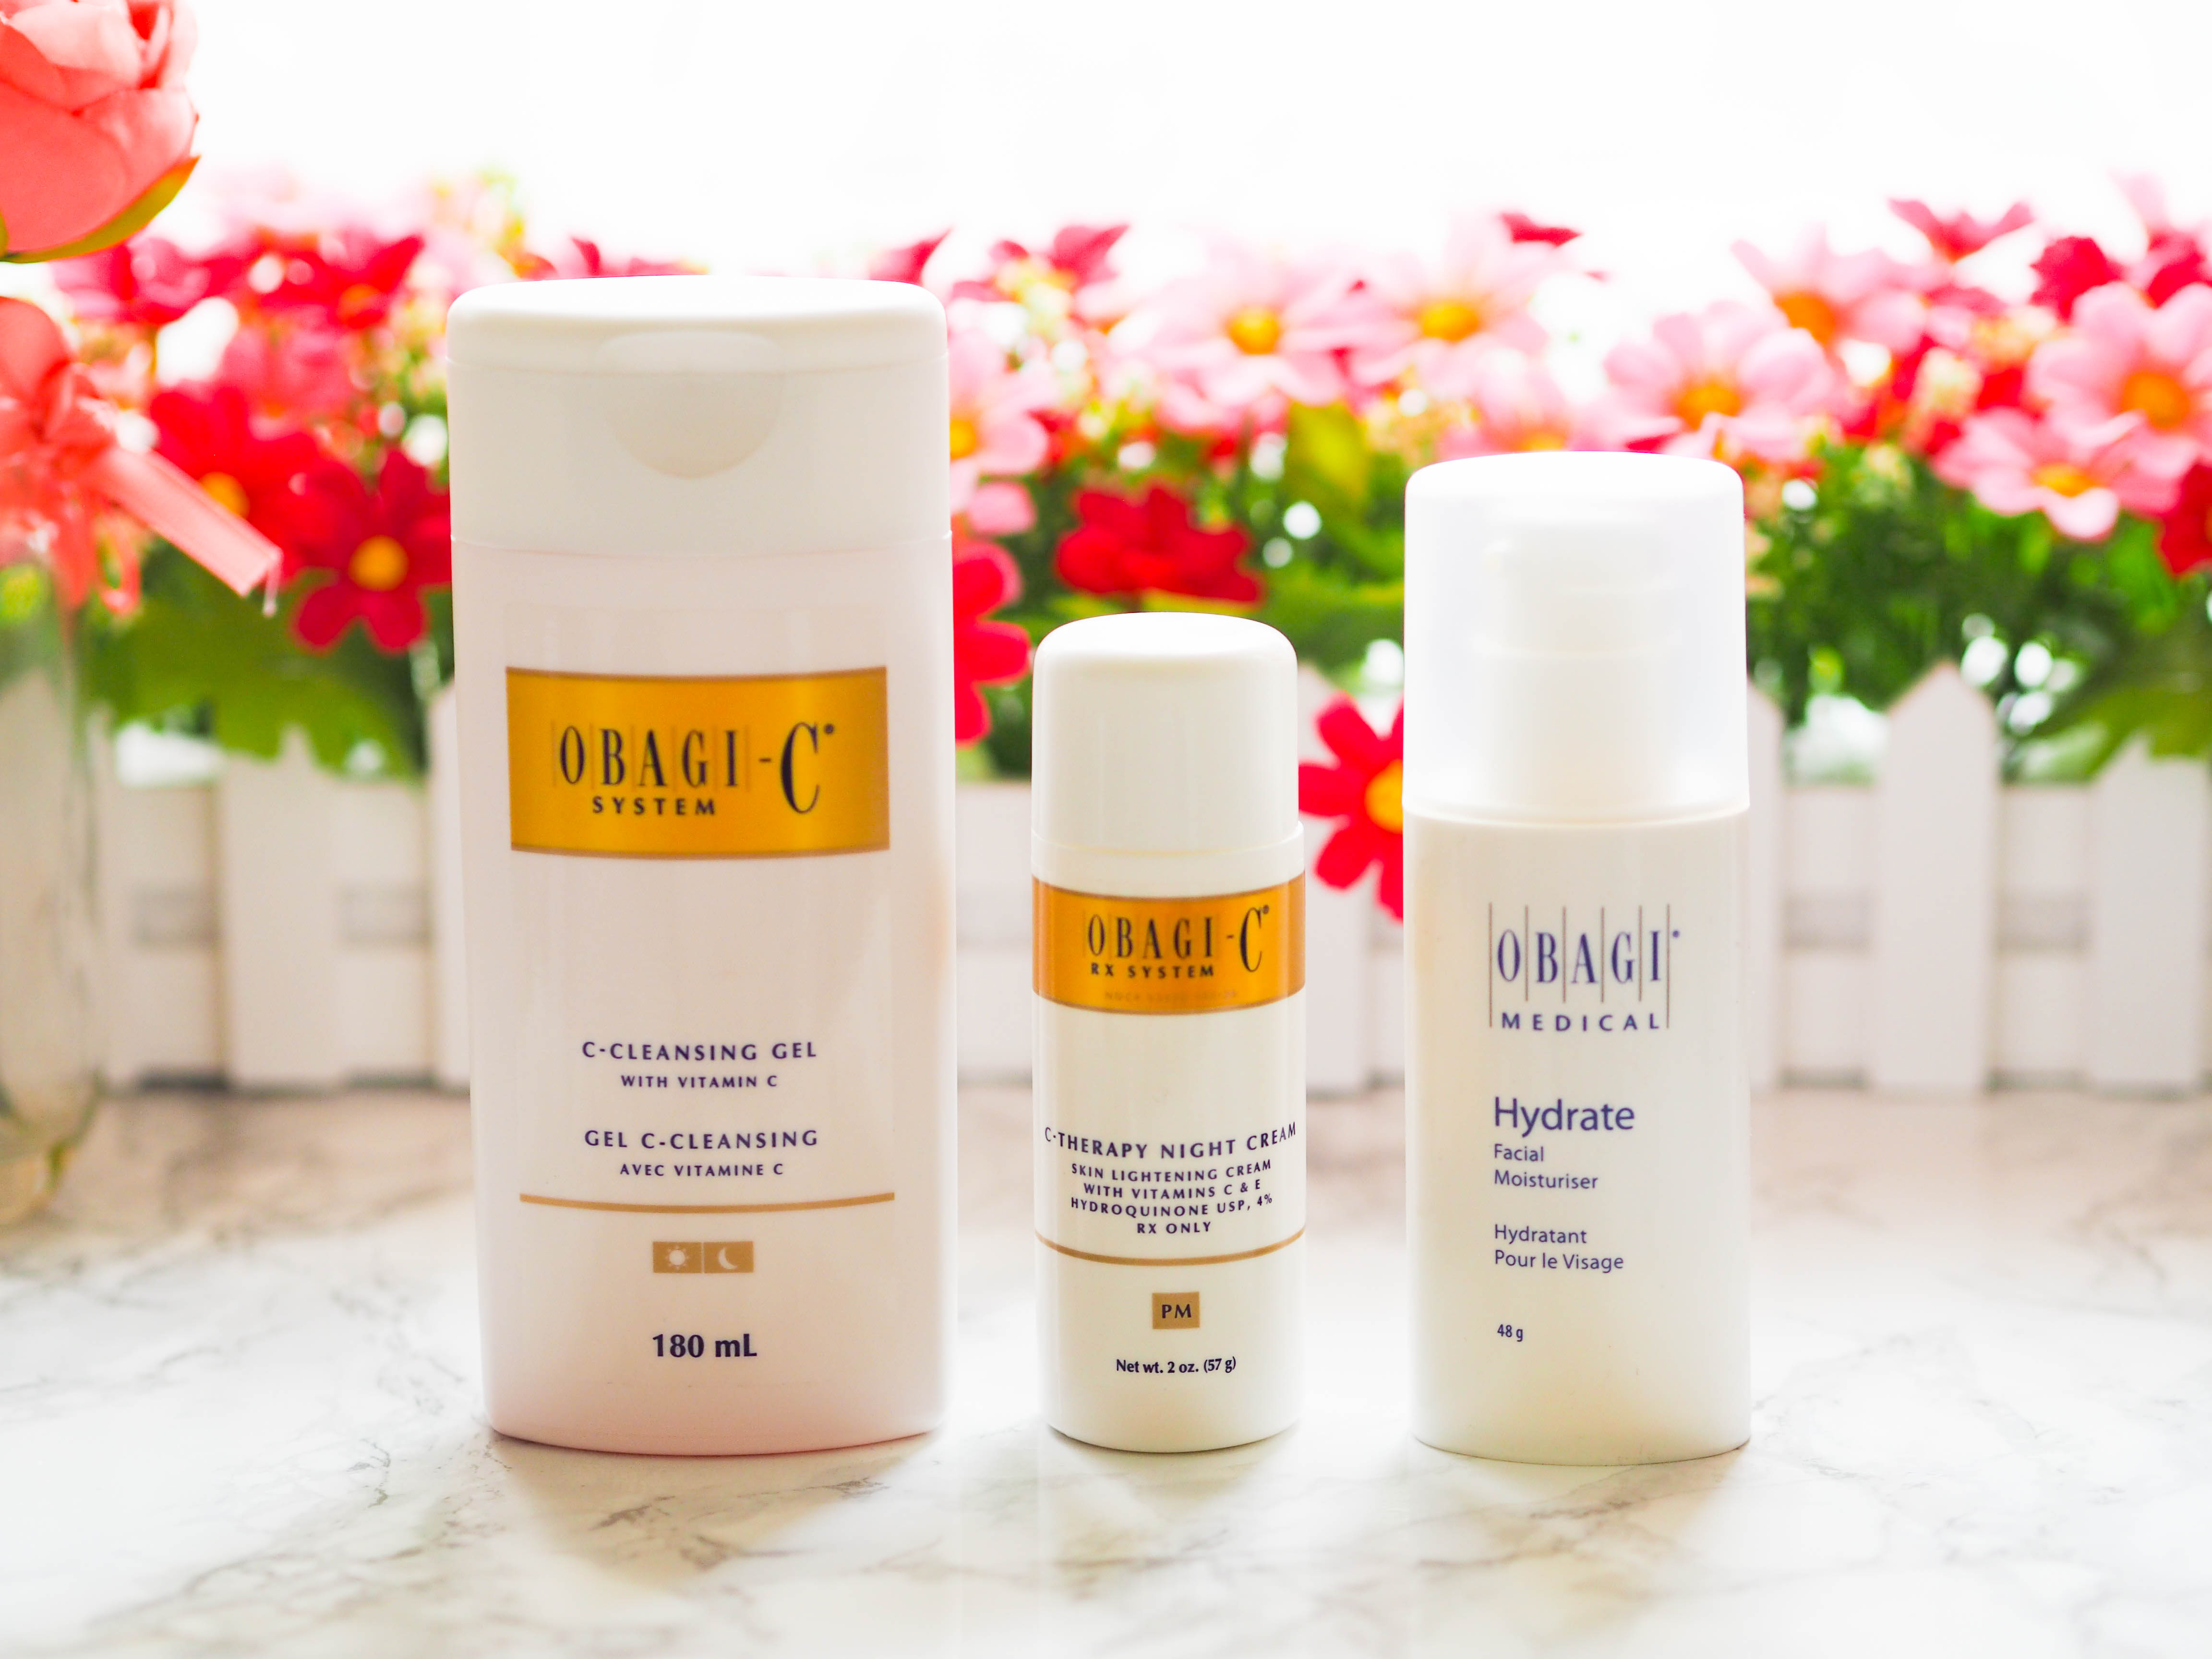 Obagi C Rx Skincare System Initial Review Beauty Geek Uk